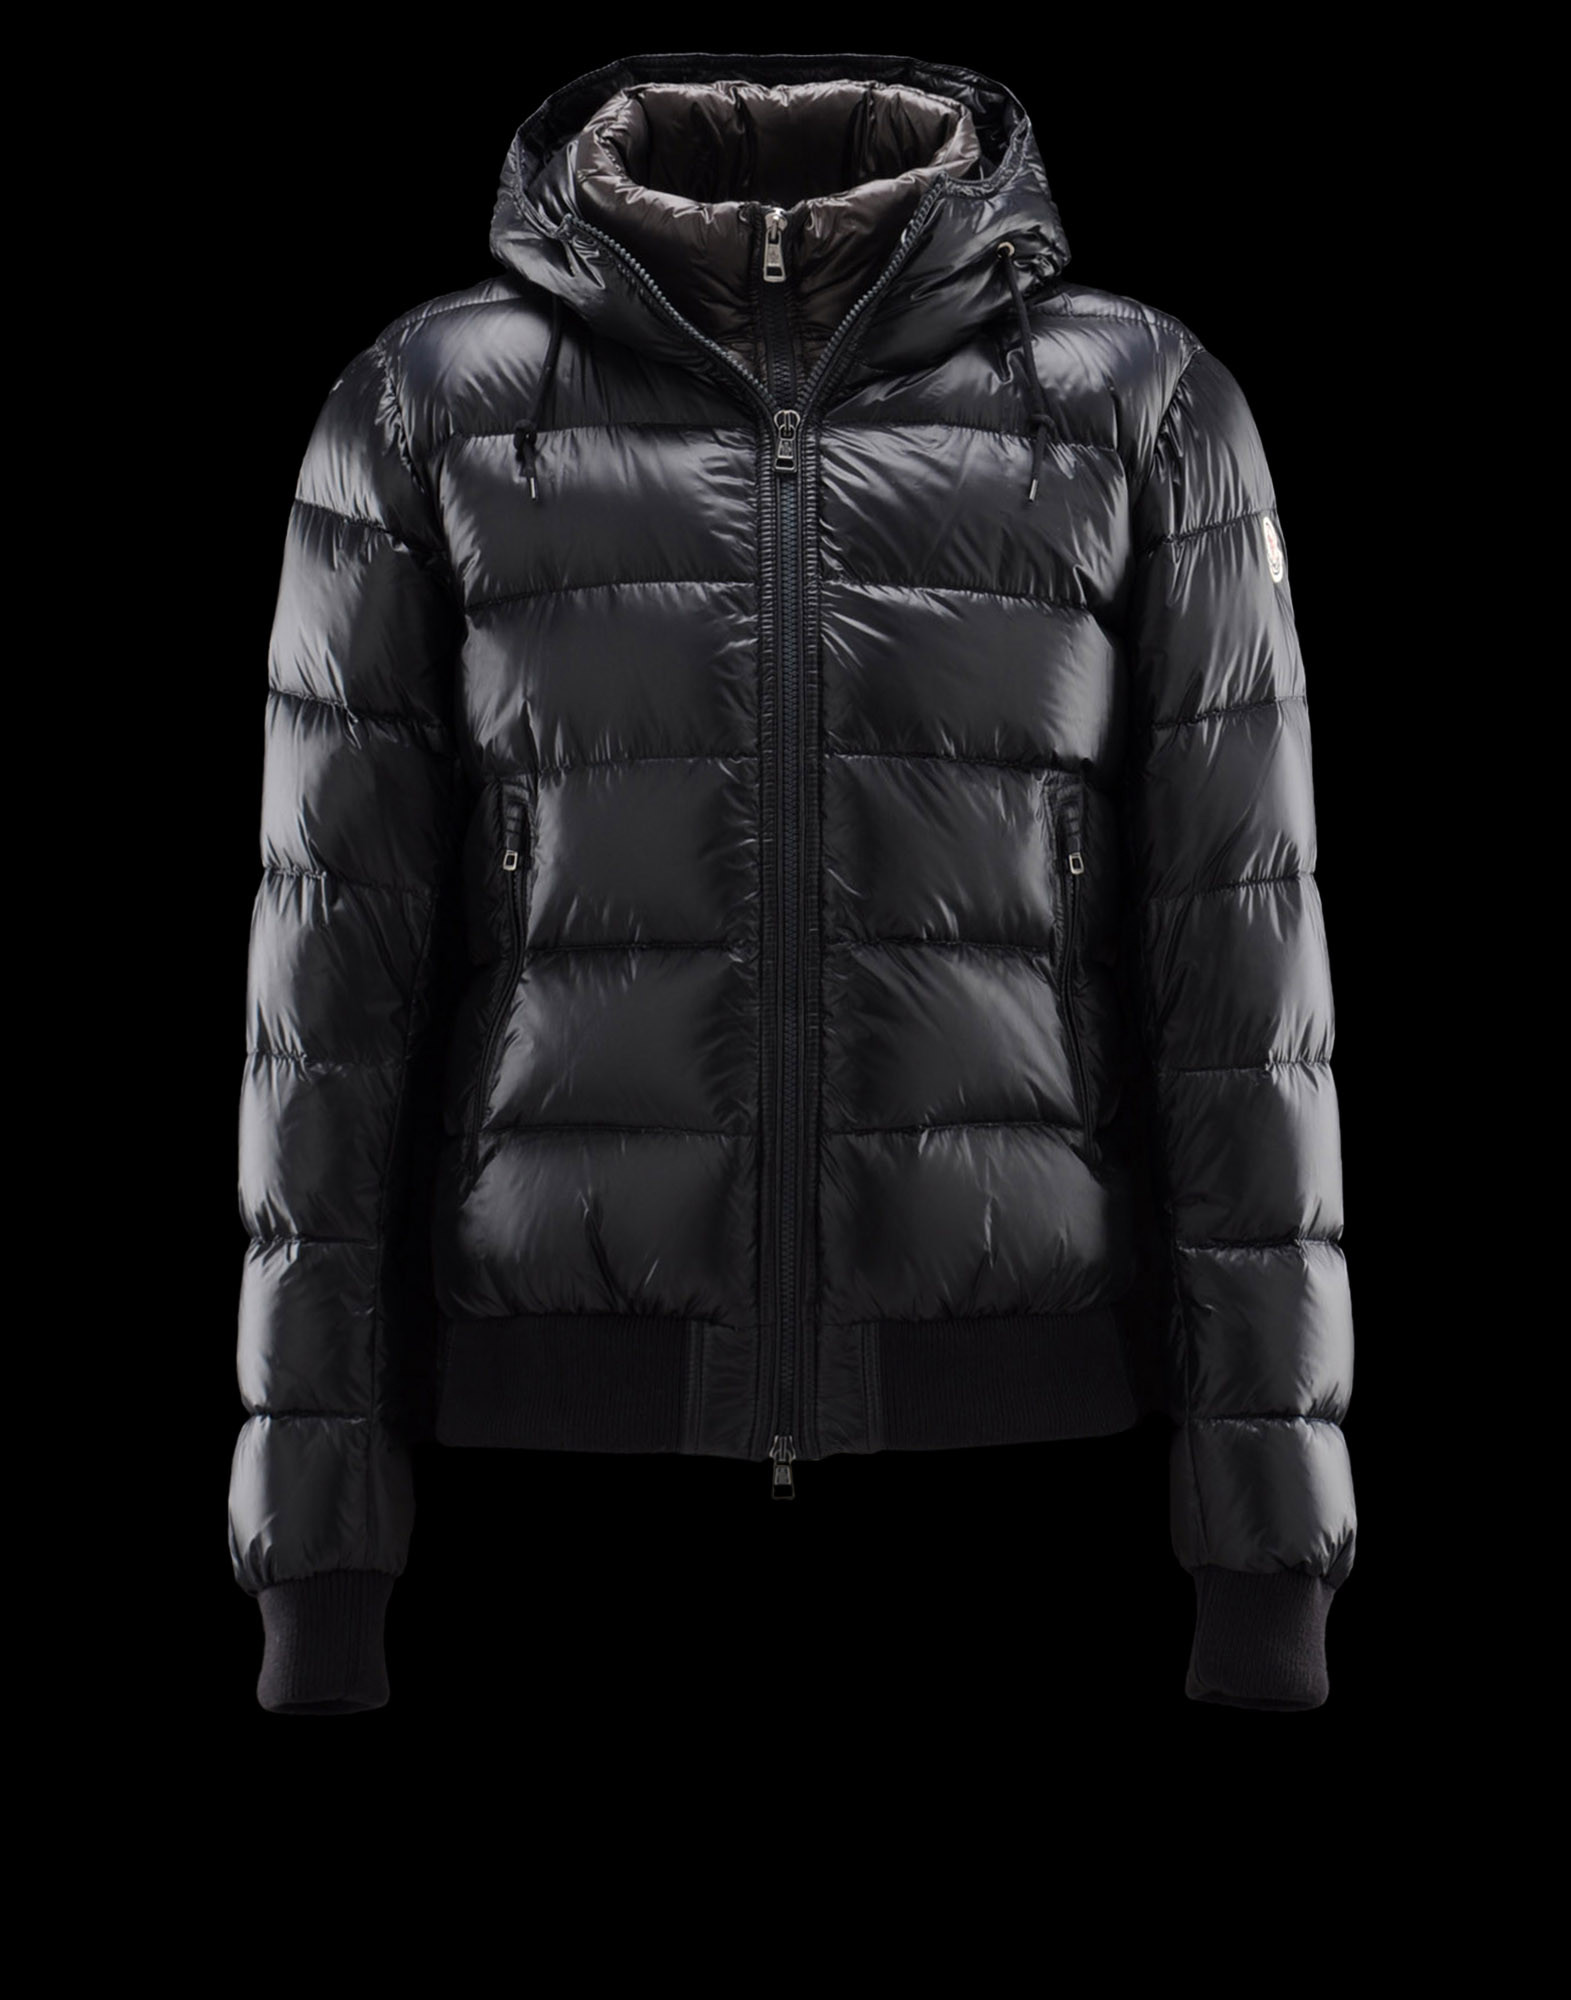 825362 Moncler Outlet Orlando Moncler Store Moncler Jacket For Women  - 50% Off